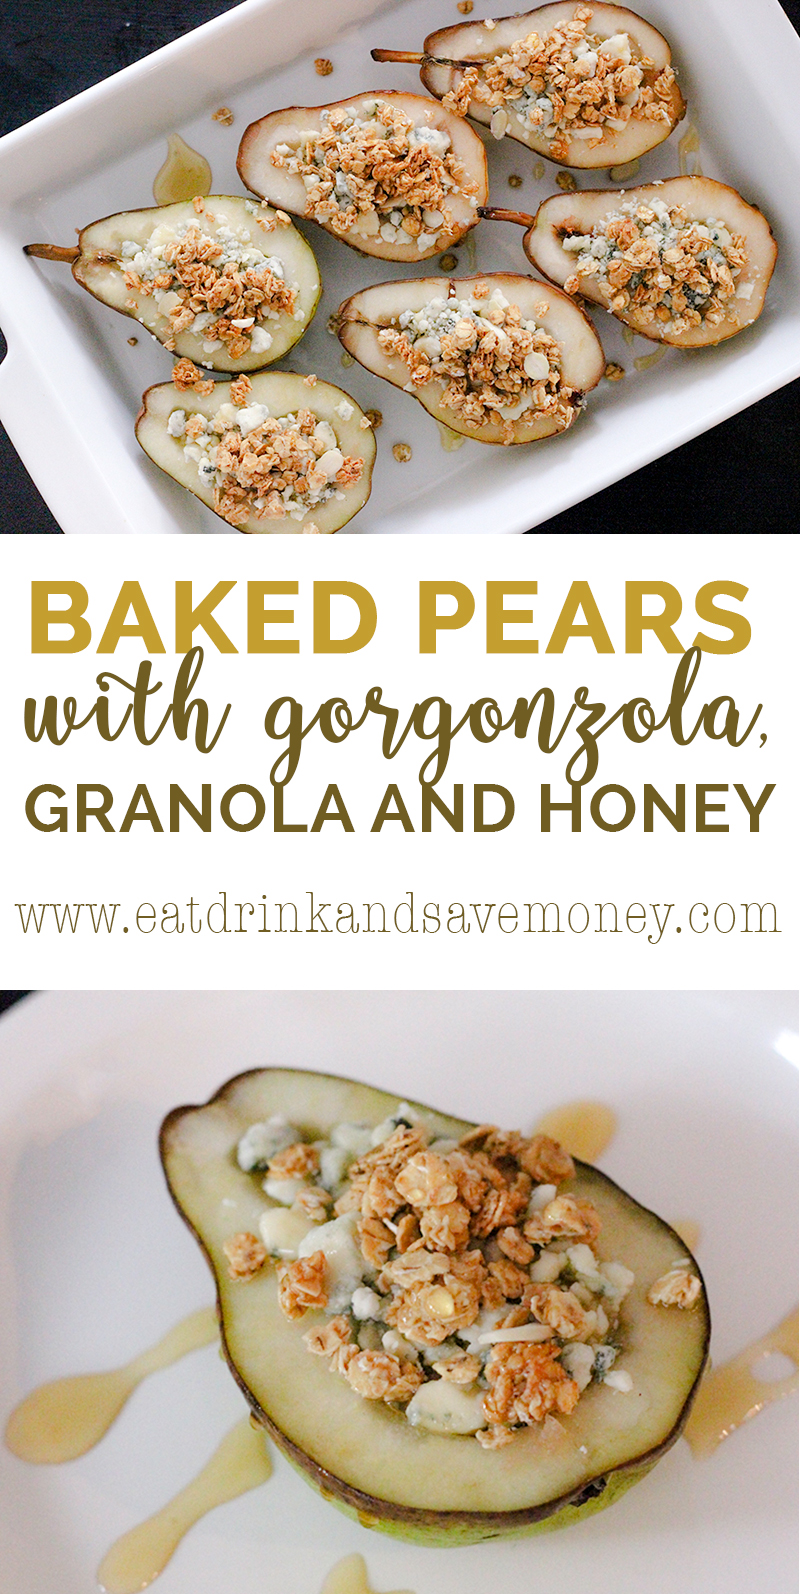 OMG- Check out this amazing blogger recipe for baked pears with gorgonzola granola and honey. It's perfect for holiday entertaining because it's so easy and tastes amazing. I can't wait to try this!